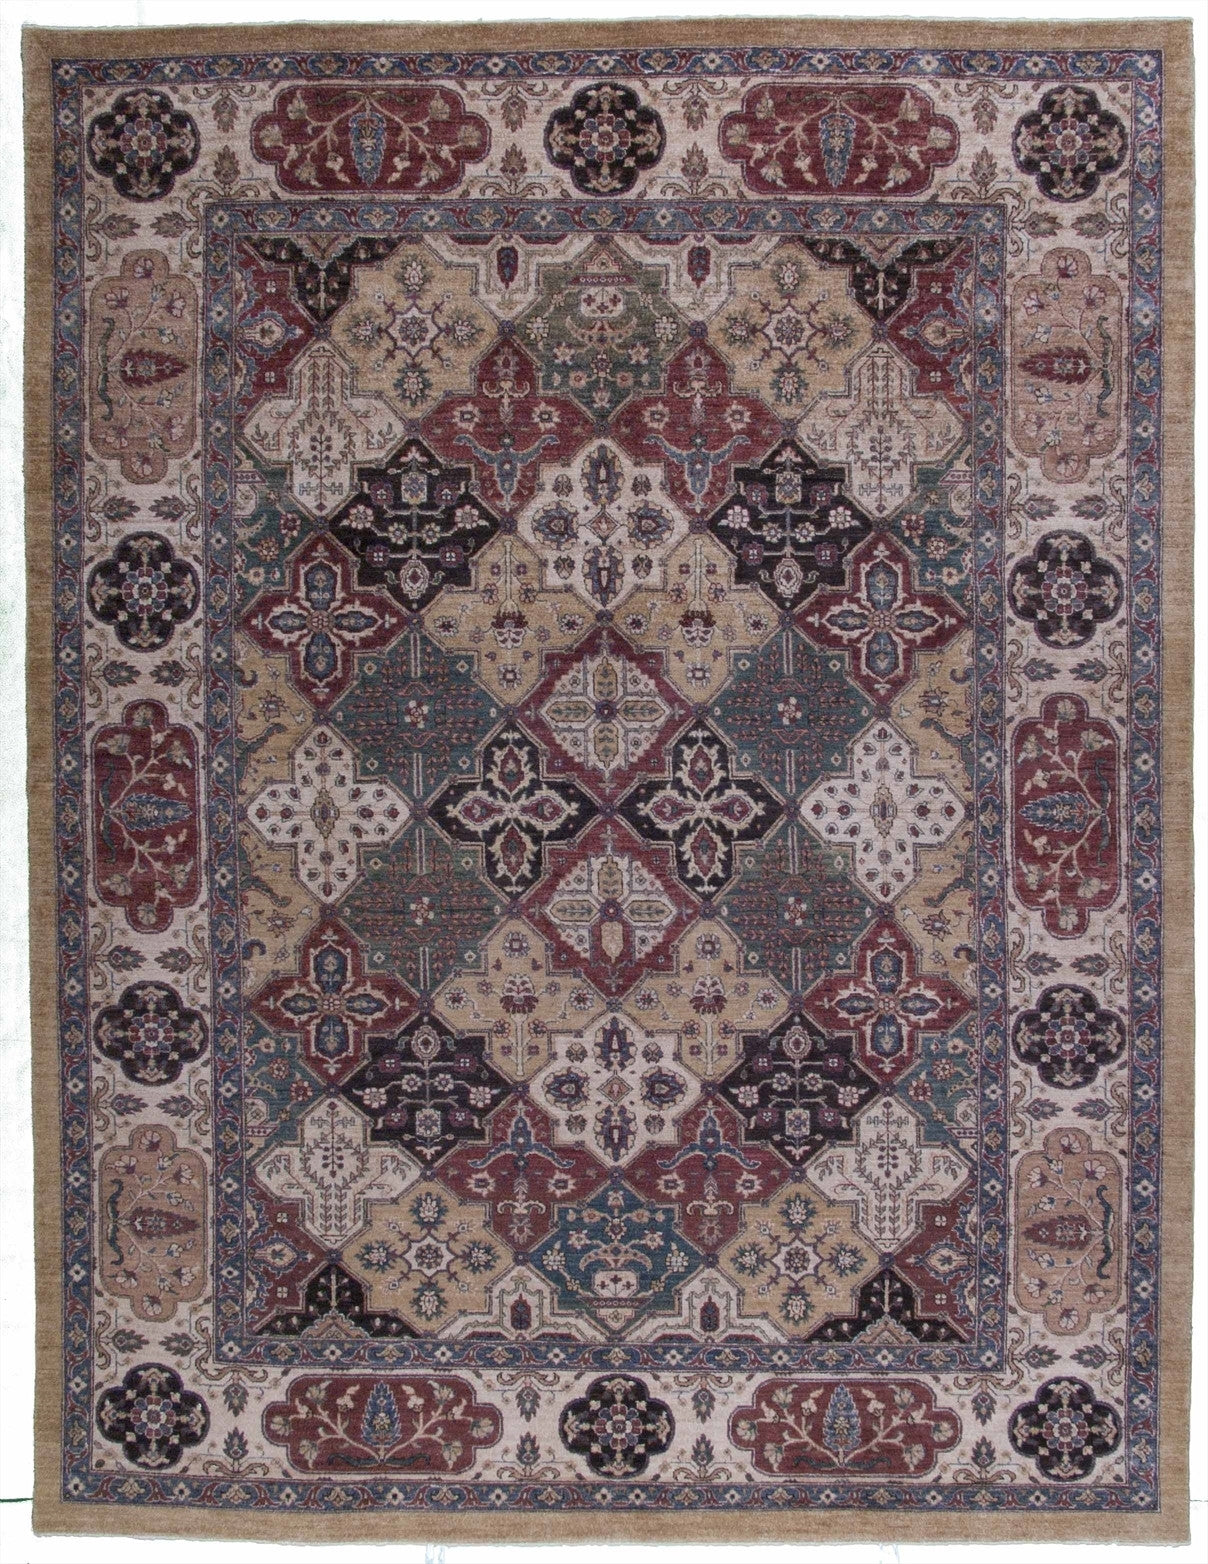 New Pakistan Hand-woven Antique Reproduction of a 19th Century Khorasan Carpet         9'x 11'9""